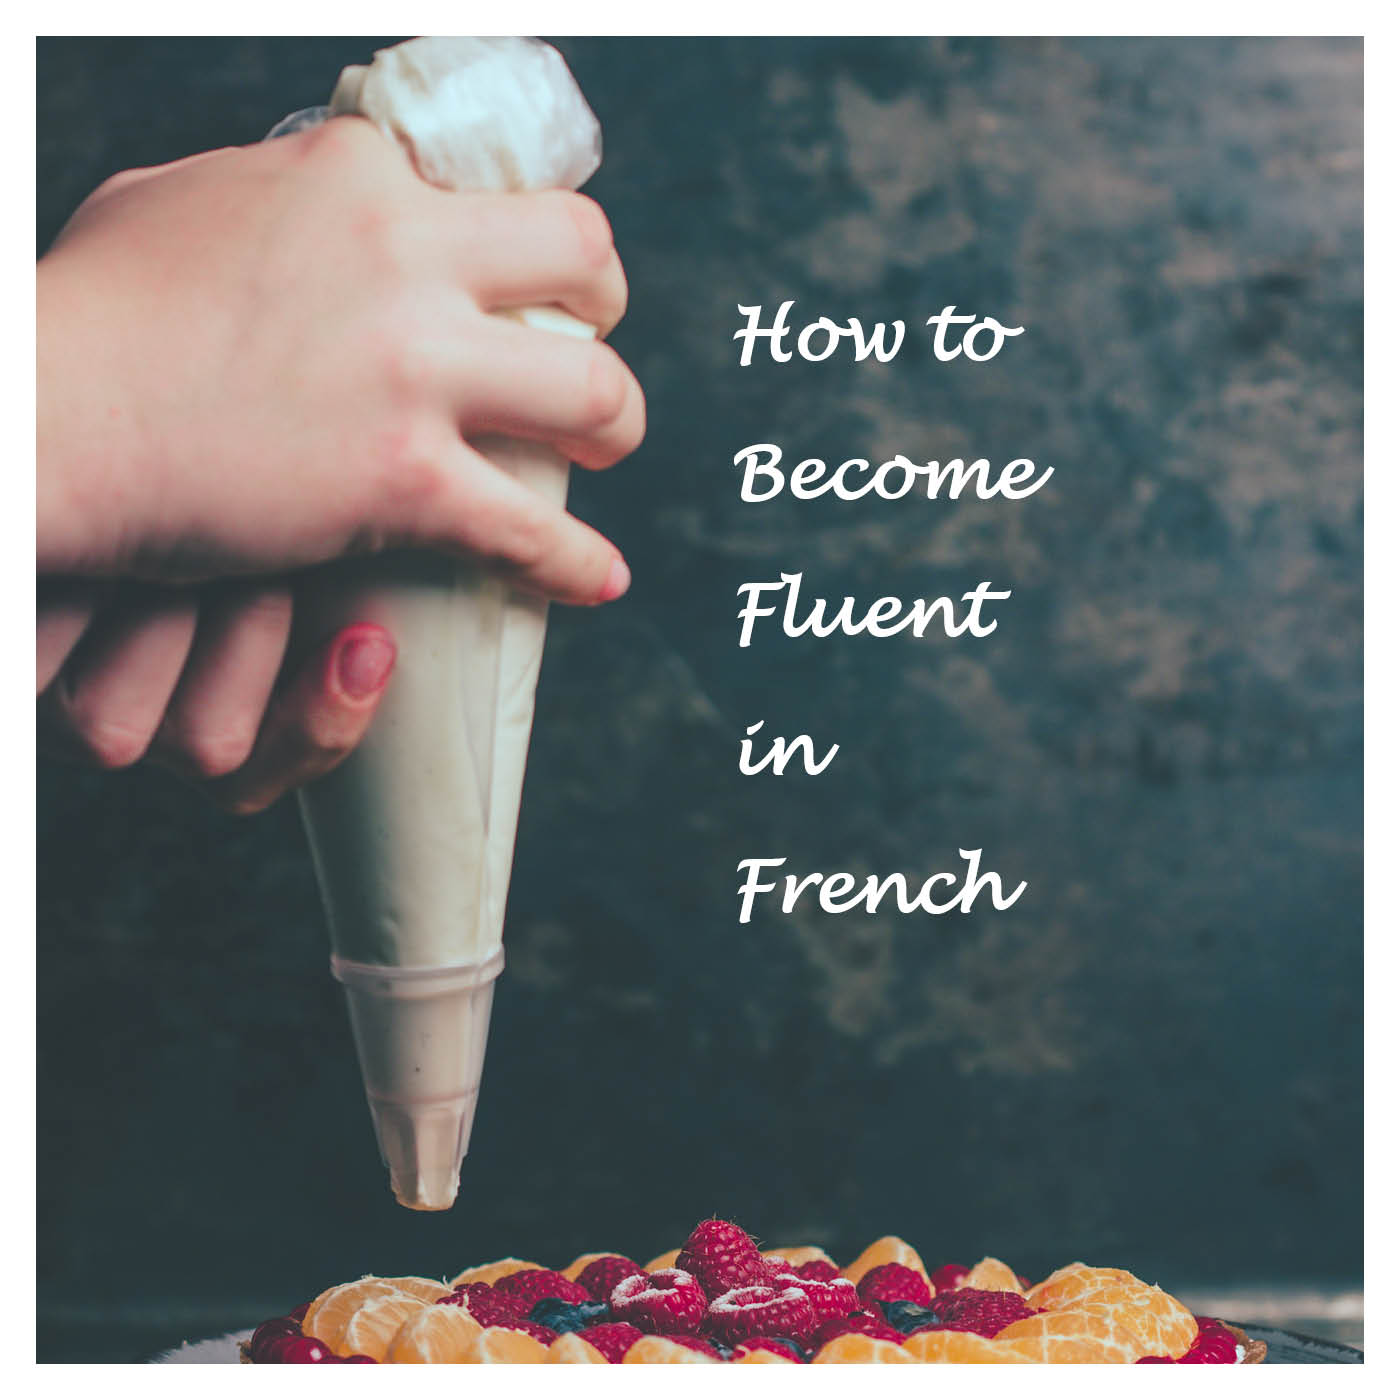 Bienvenue's How To Become Fluent in French show art